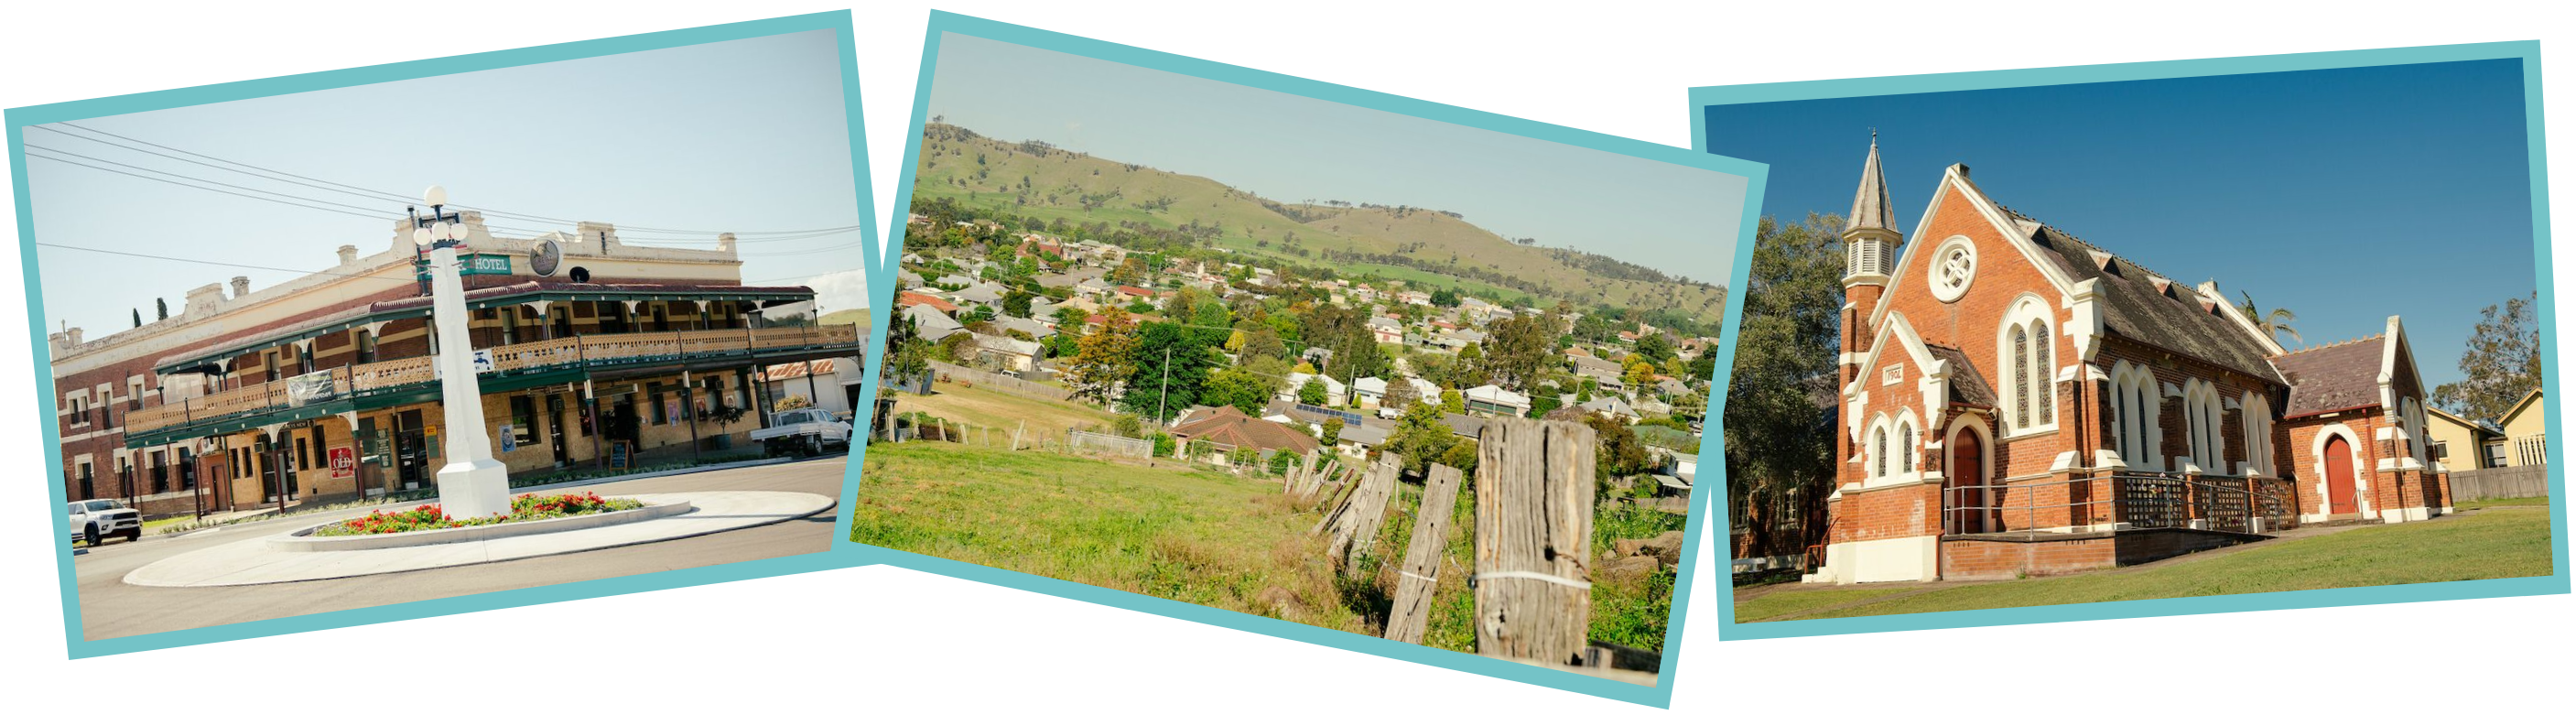 Experience dungog area - Dungog Visitor Centre